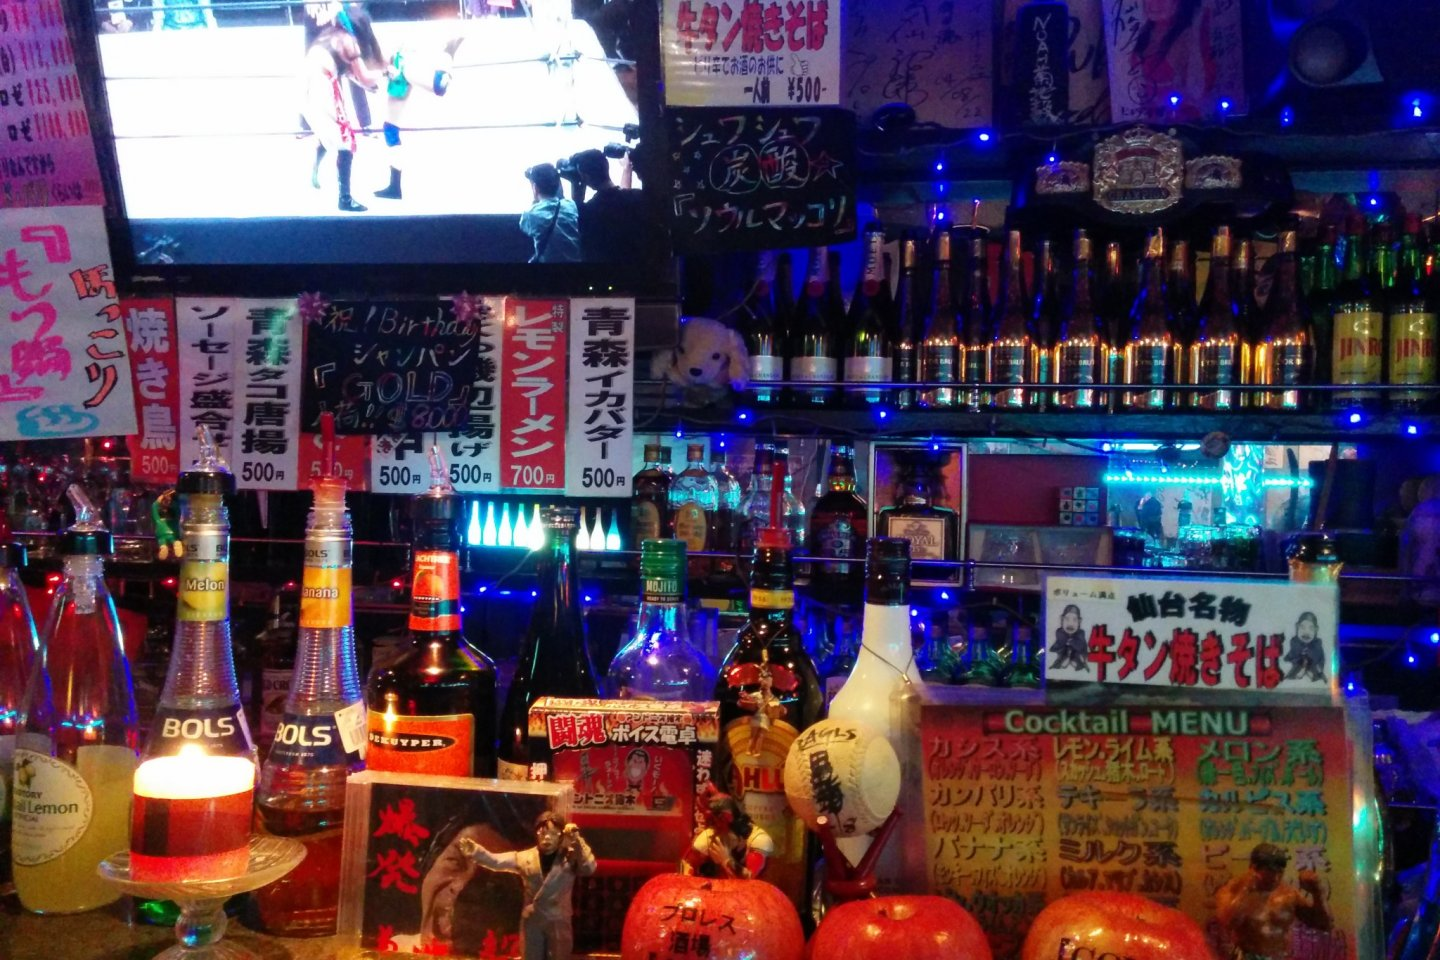 The bar counter with TV monitor in back